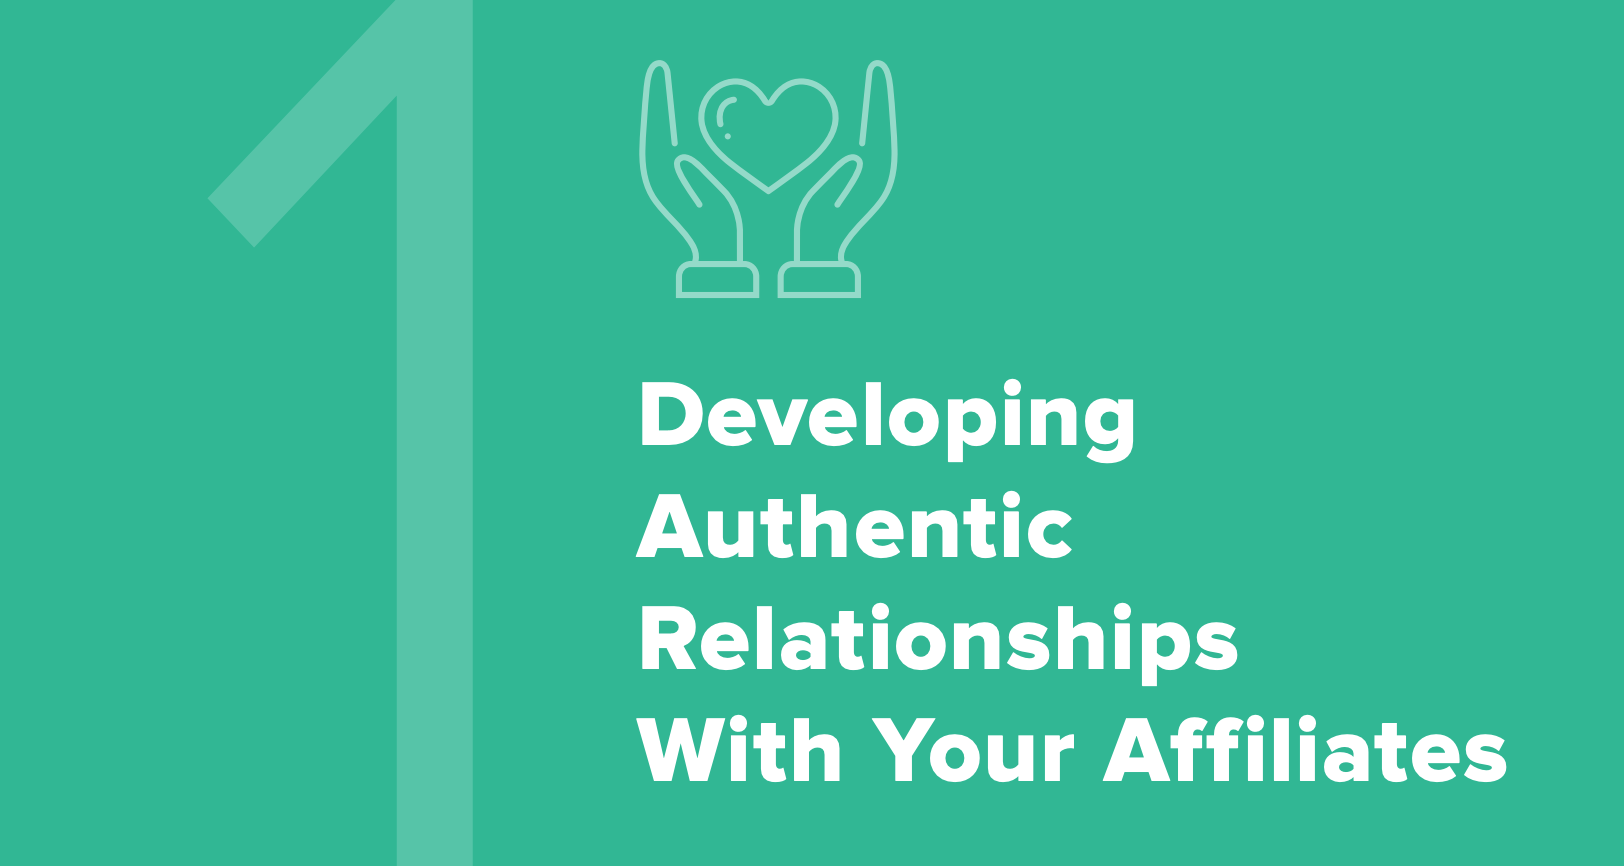 Developing authentic relationships with your affiliates